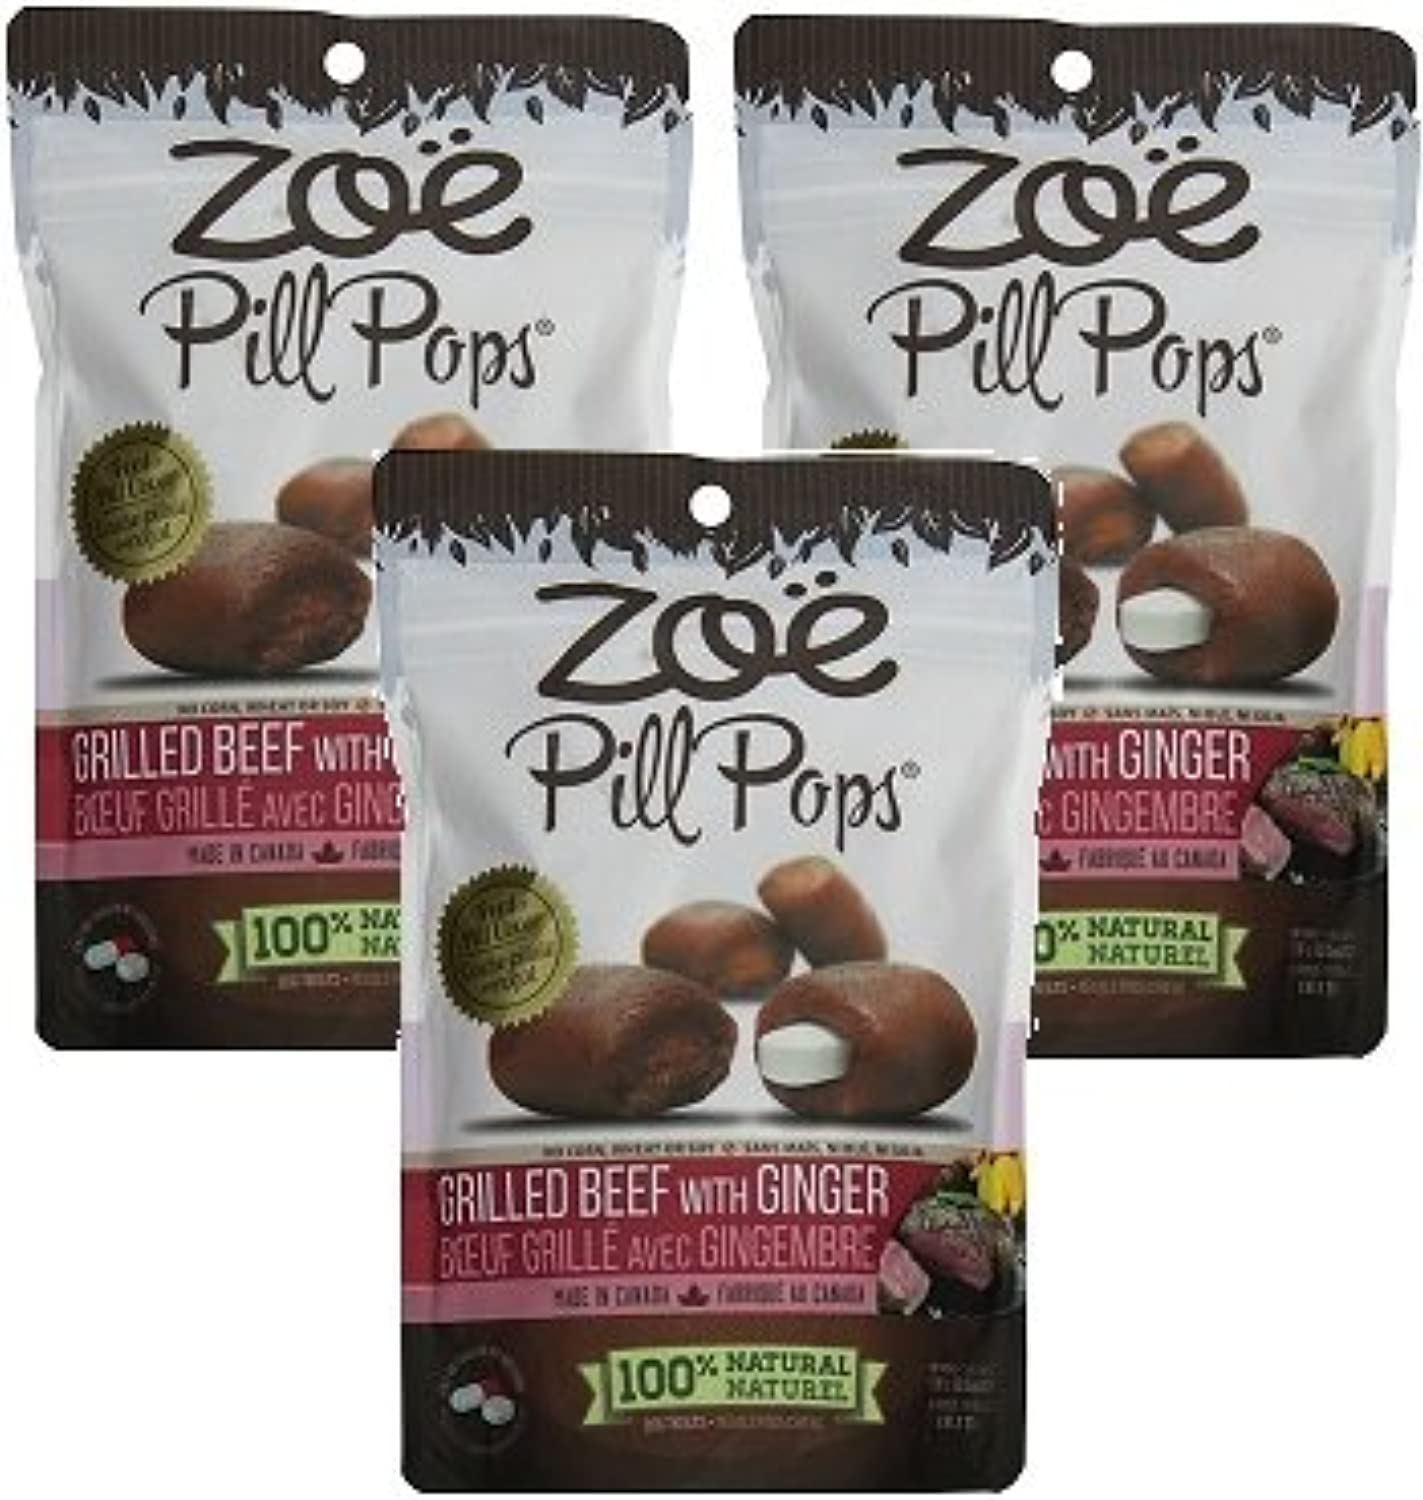 (3 Pack) Zoe Pill Pops Grilled Beef with Ginger  3.5 Ounces Each